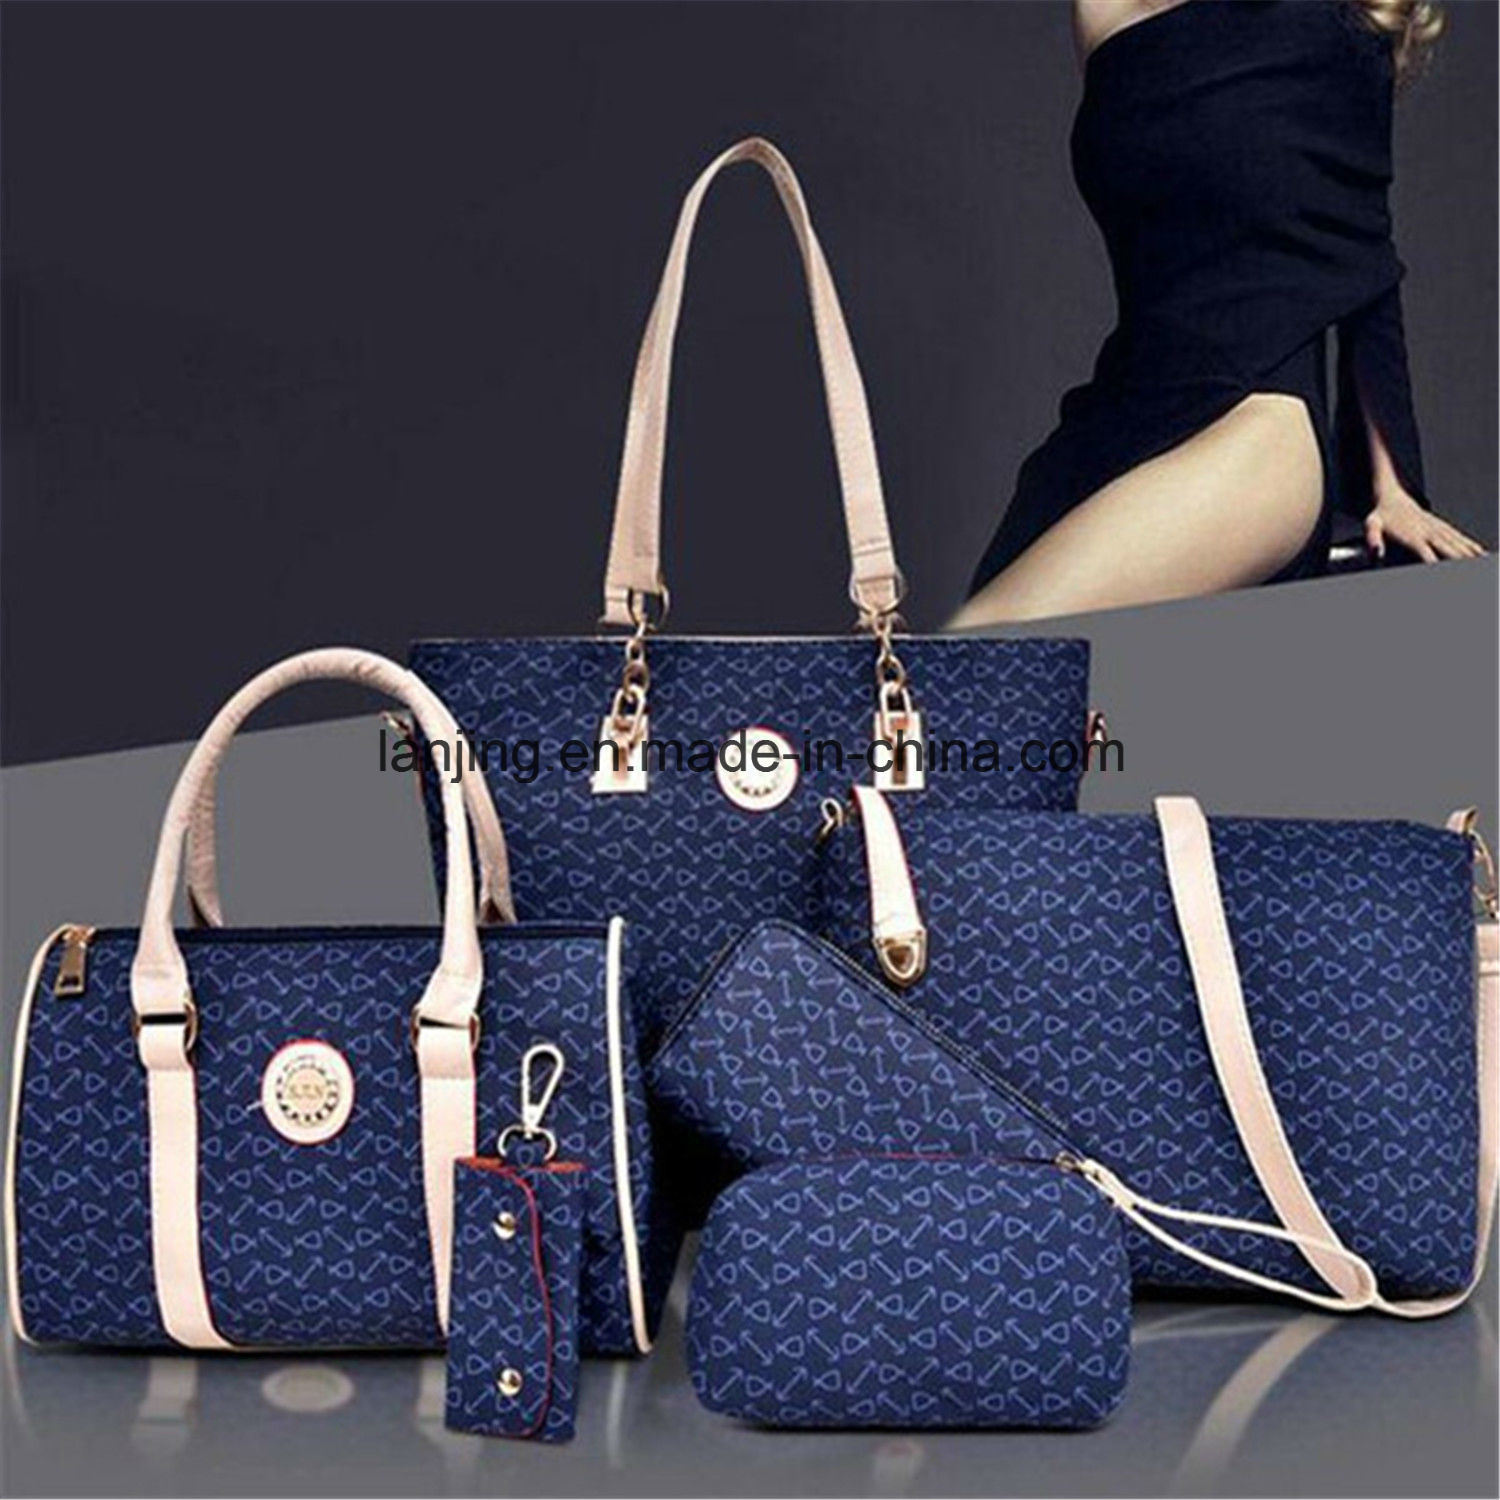 New Fashion Women 6PCS Handbag Shoulder Bags Tote Messenger Bag